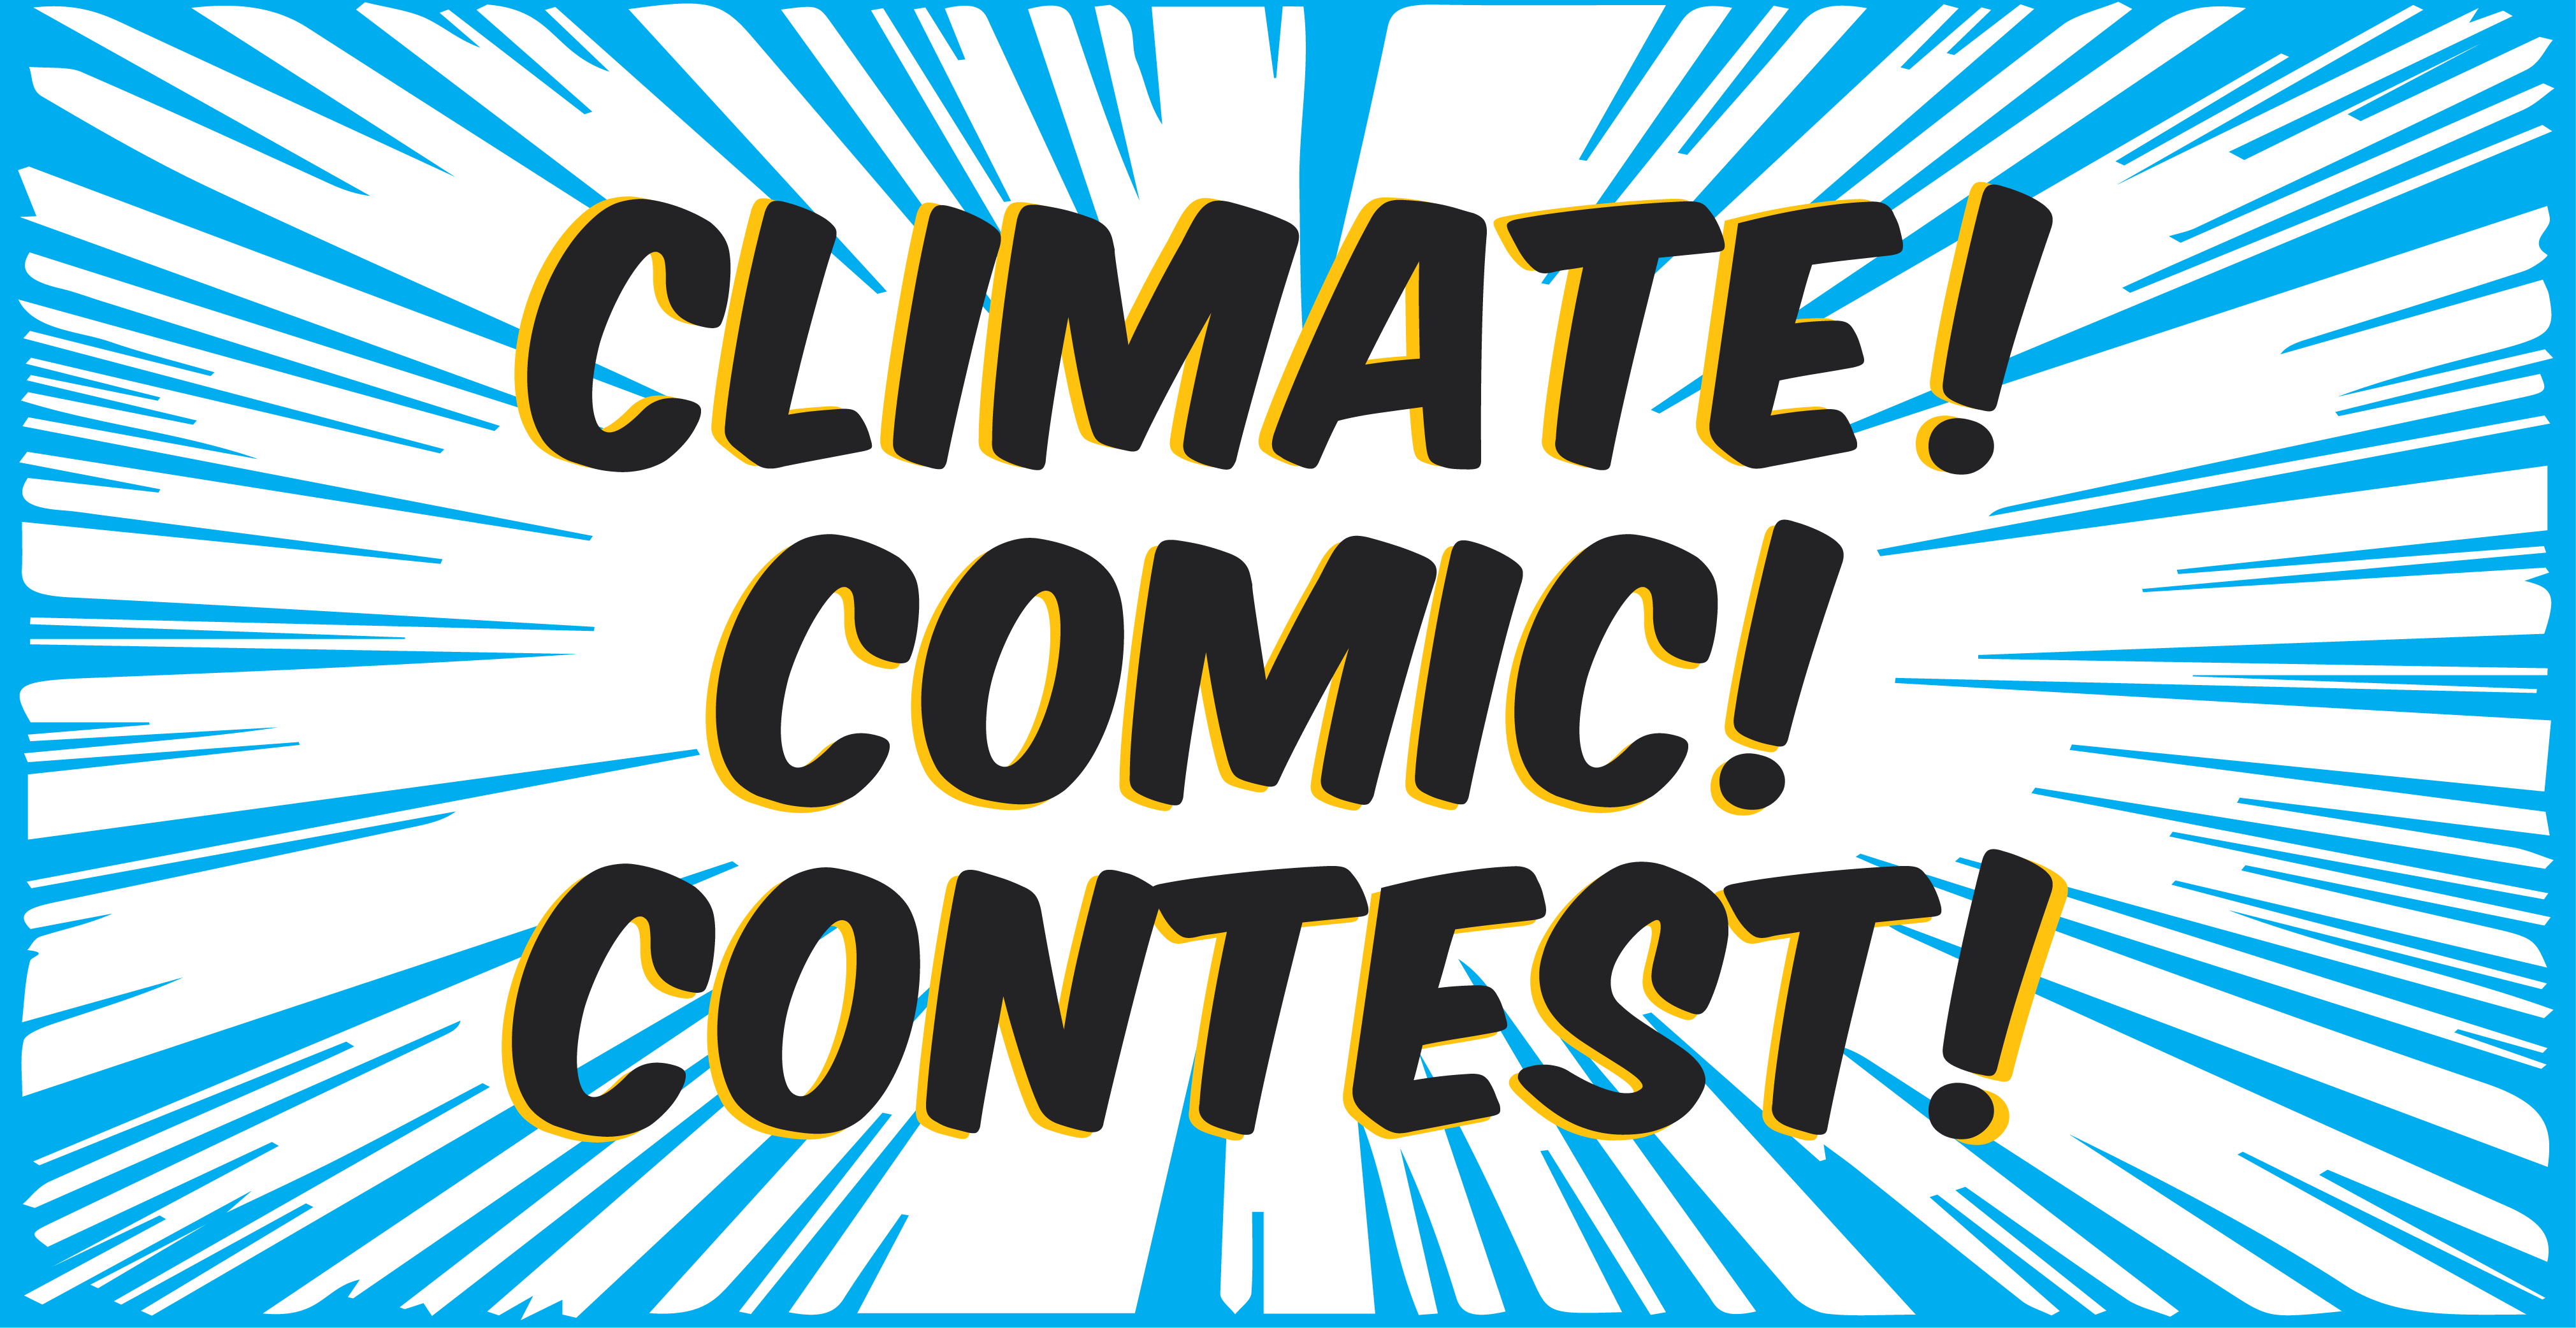 Sunny clipart weather philippine. Climate comic contest